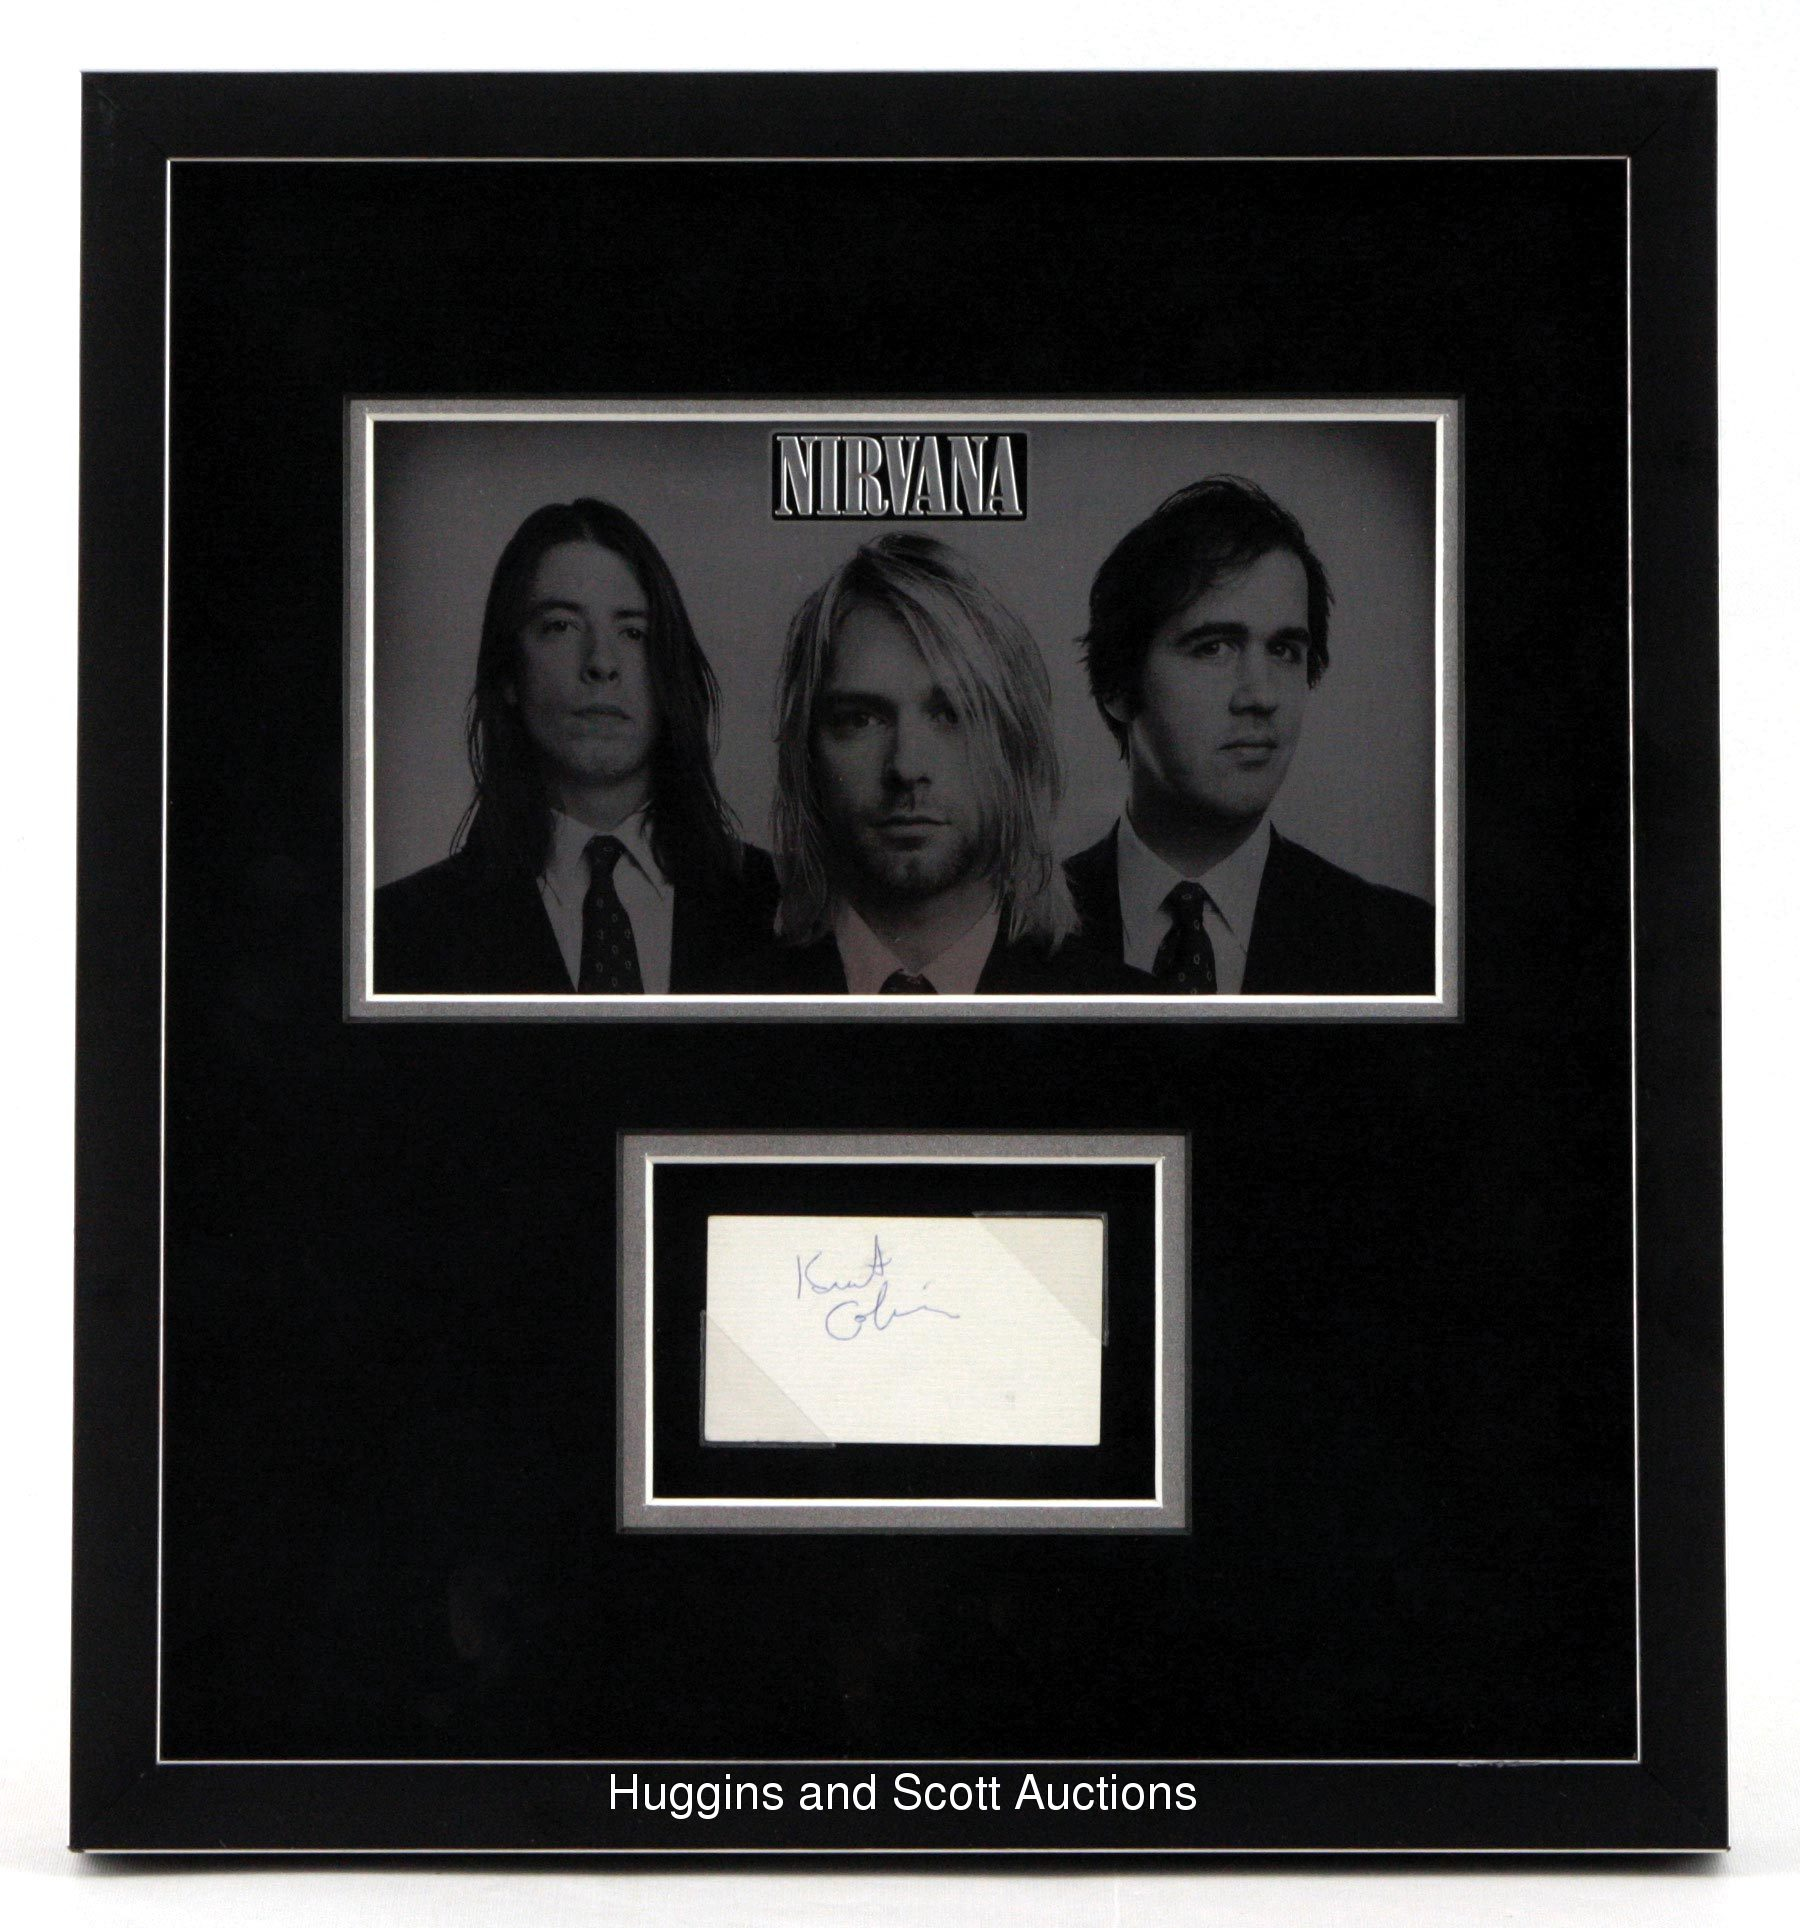 Kurt Cobain Autographed Business Card Framed & Matted in Museum ...